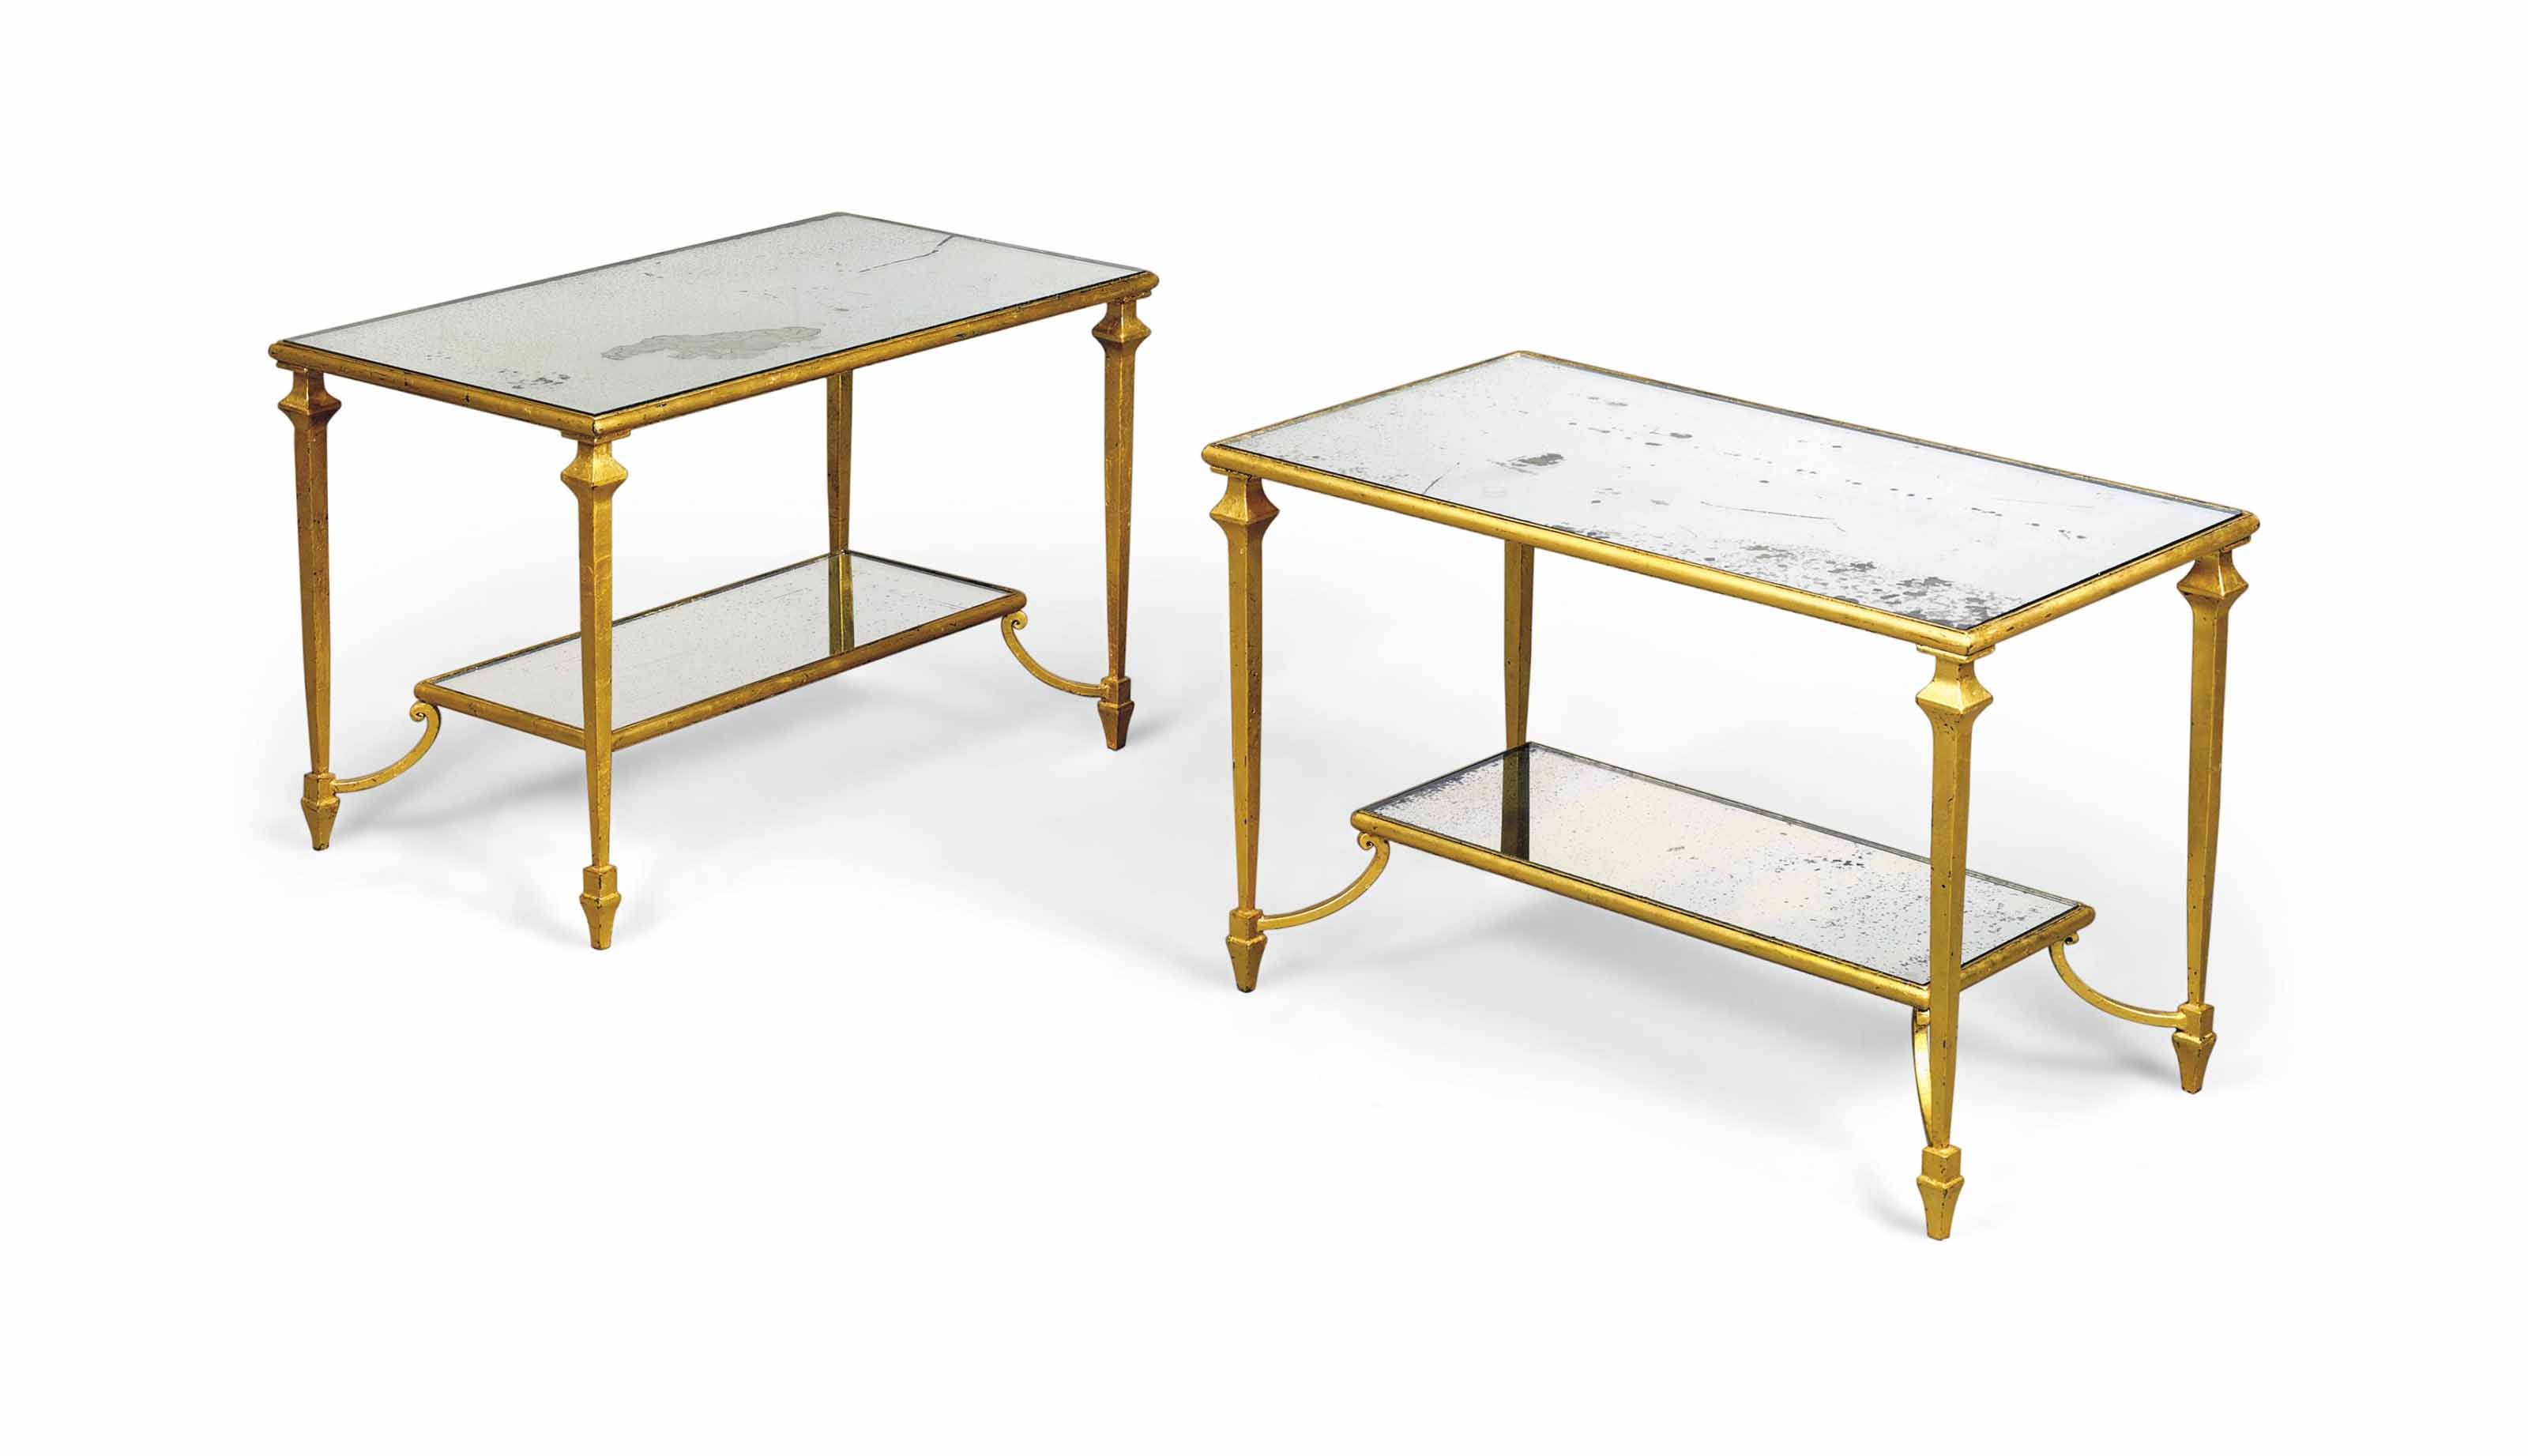 A PAIR OF GILT-METAL OCCASIONAL TABLES